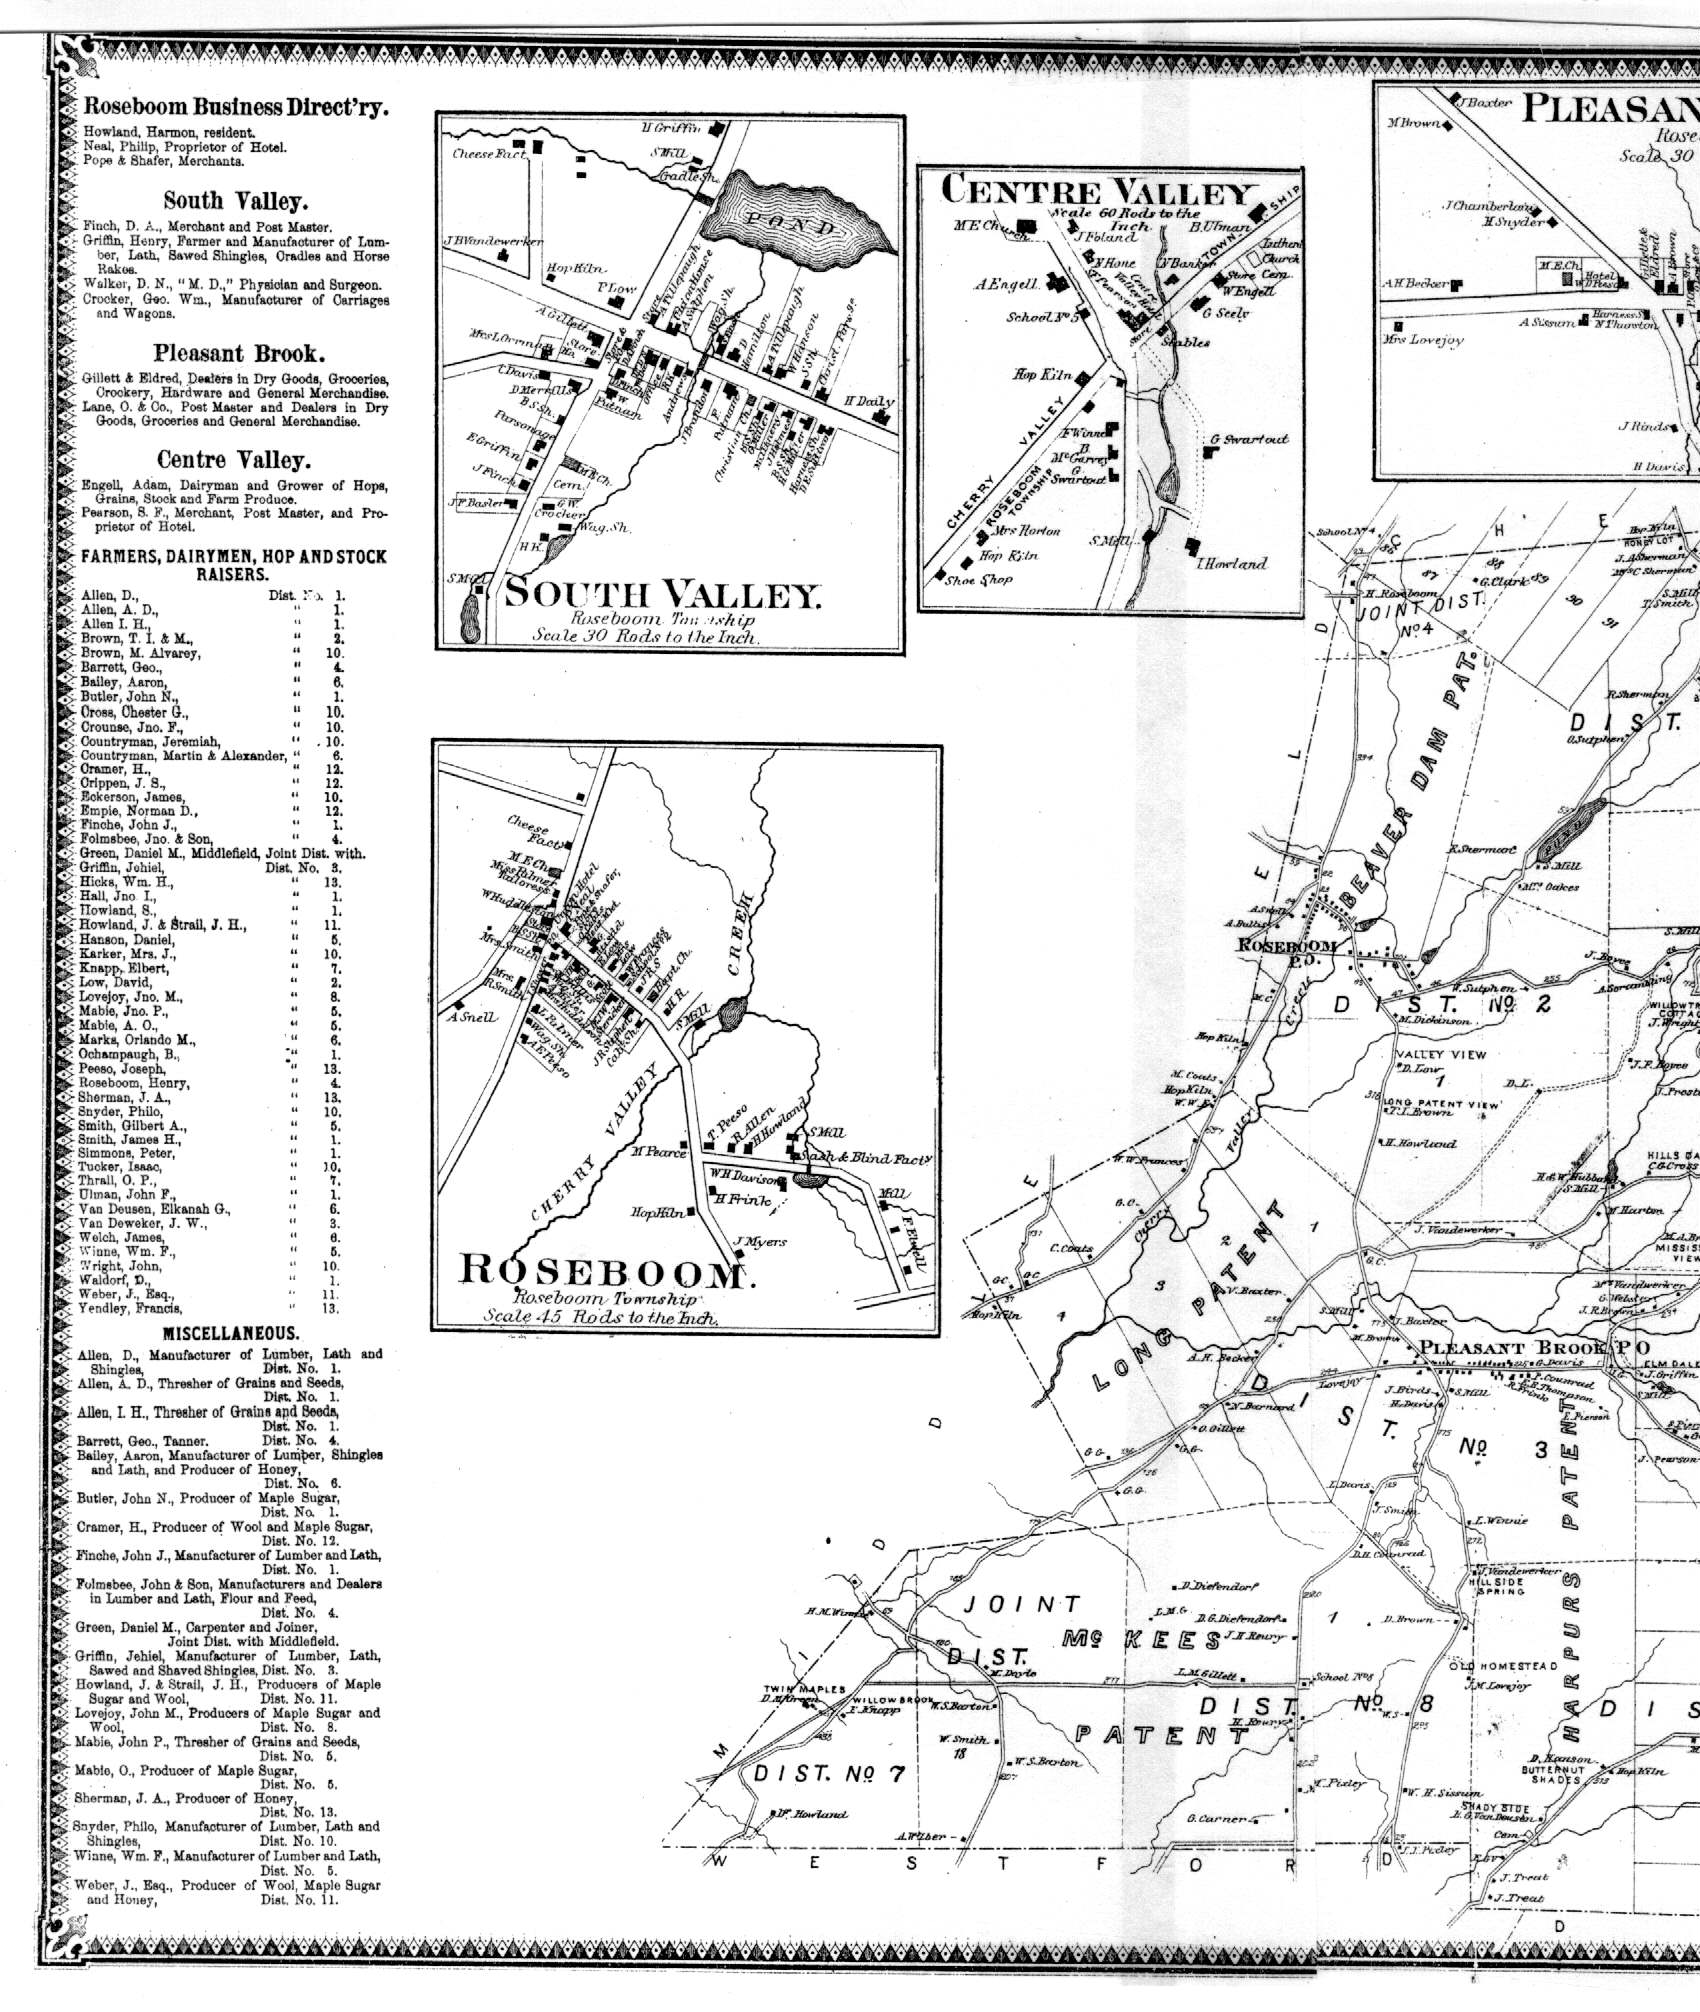 New york otsego county cherry valley - Town Of Roseboom West Section Including Villages Of South Valley Roseboom And Center Valley 641k